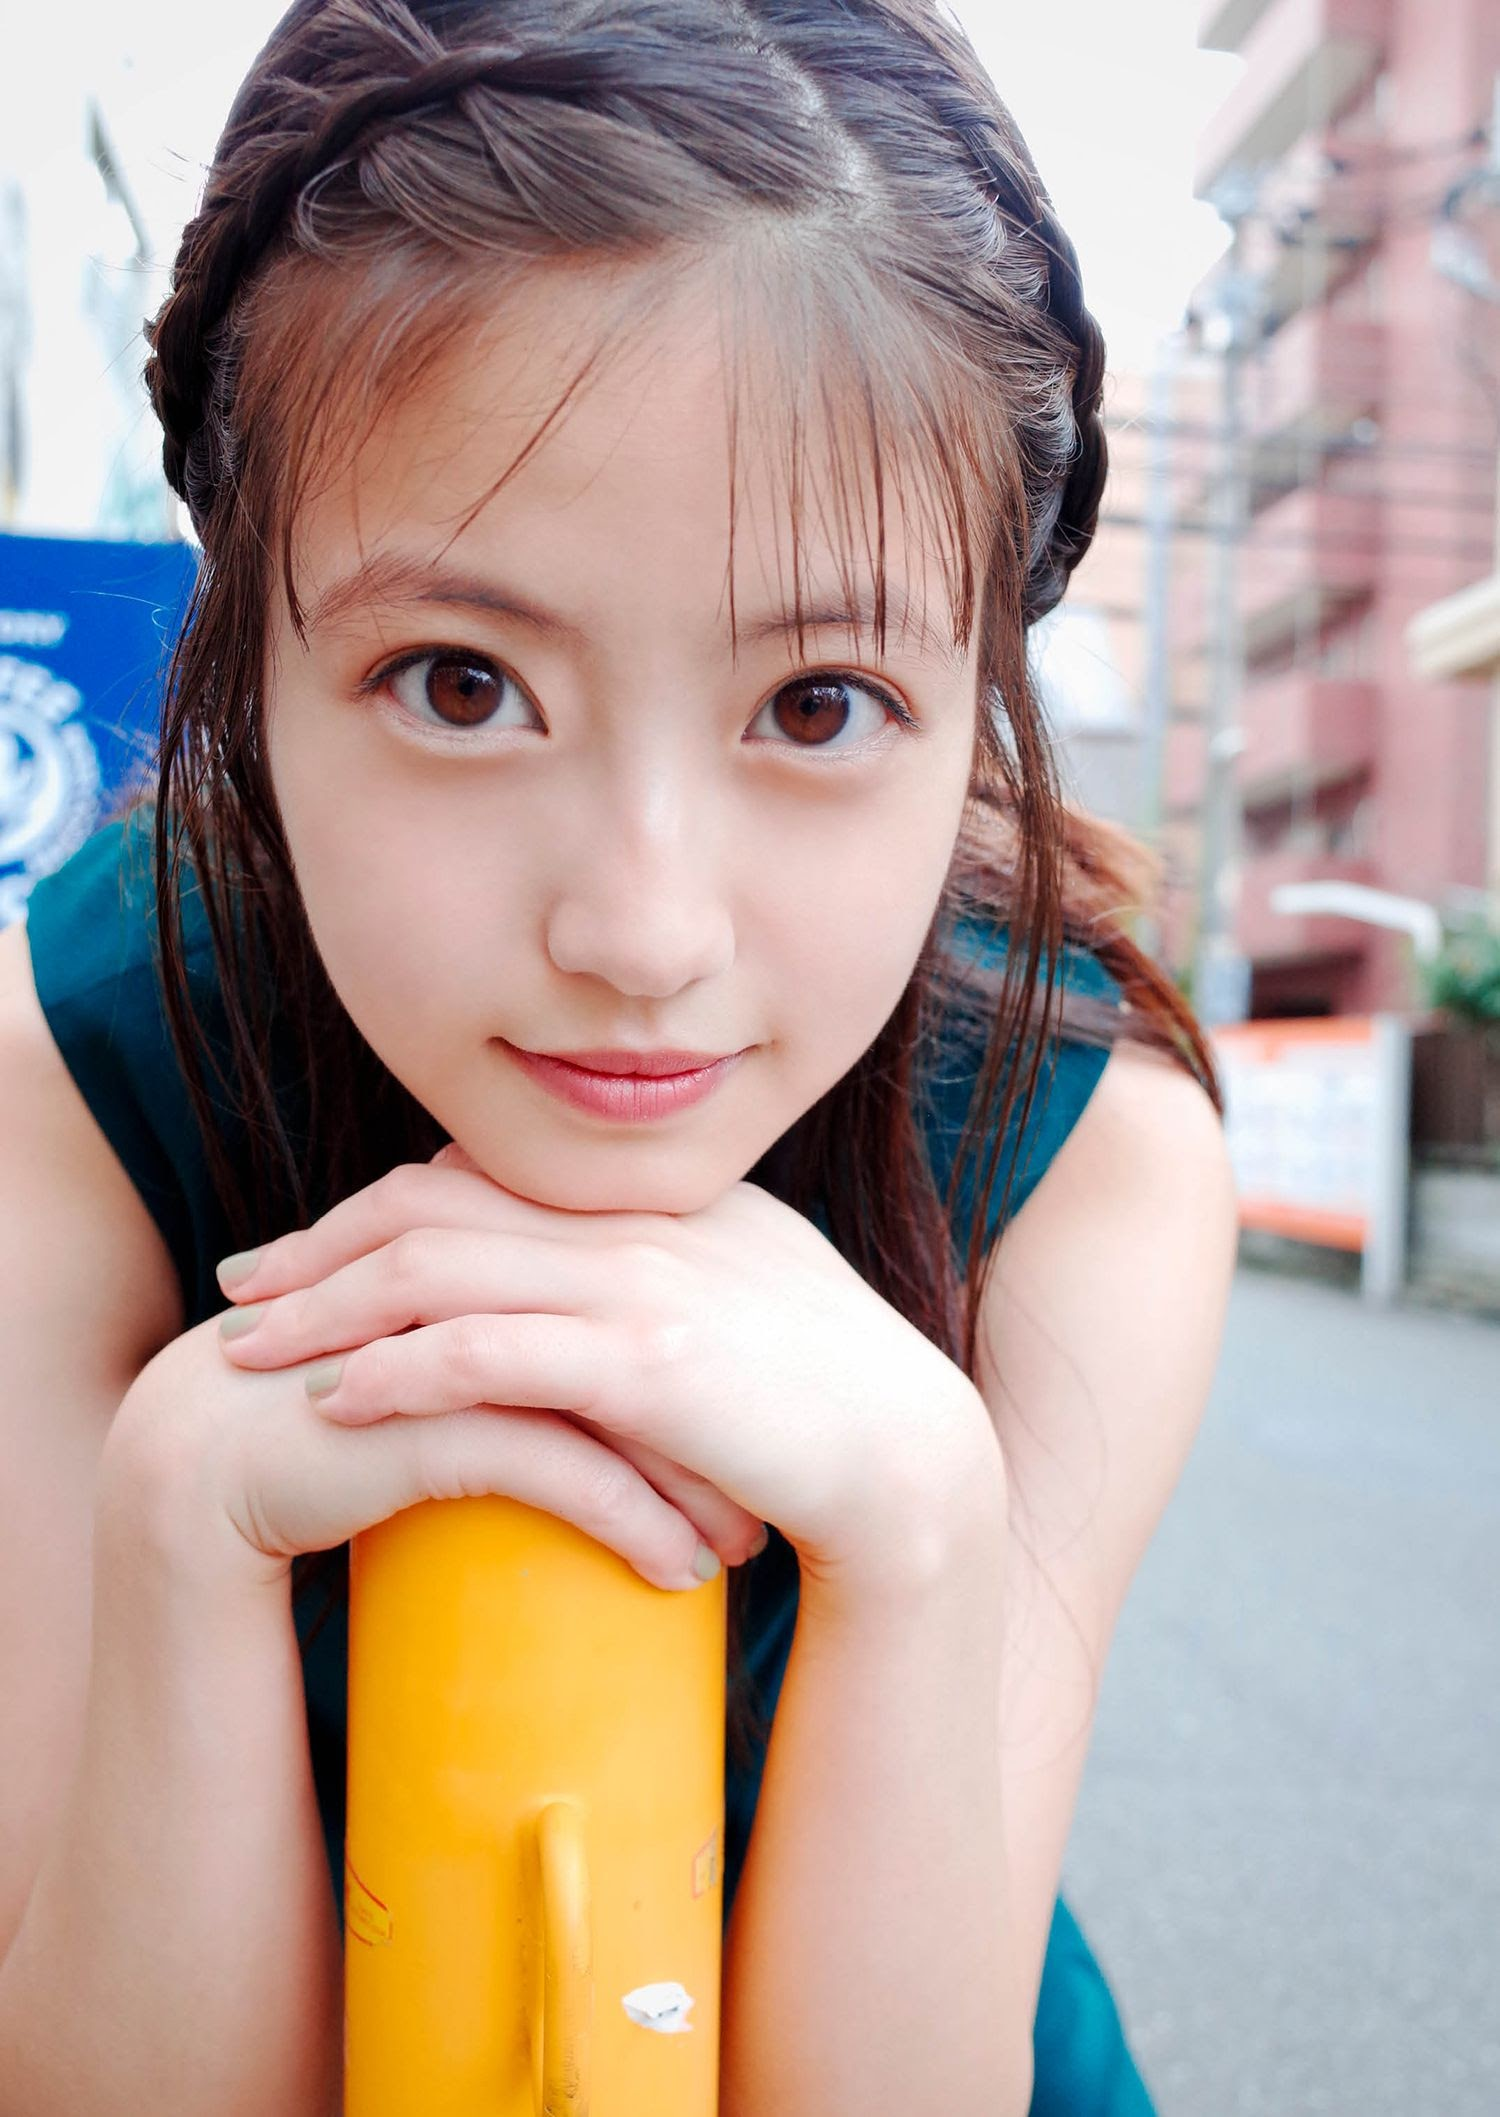 Without a doubt the youngest actress Mio Imada028